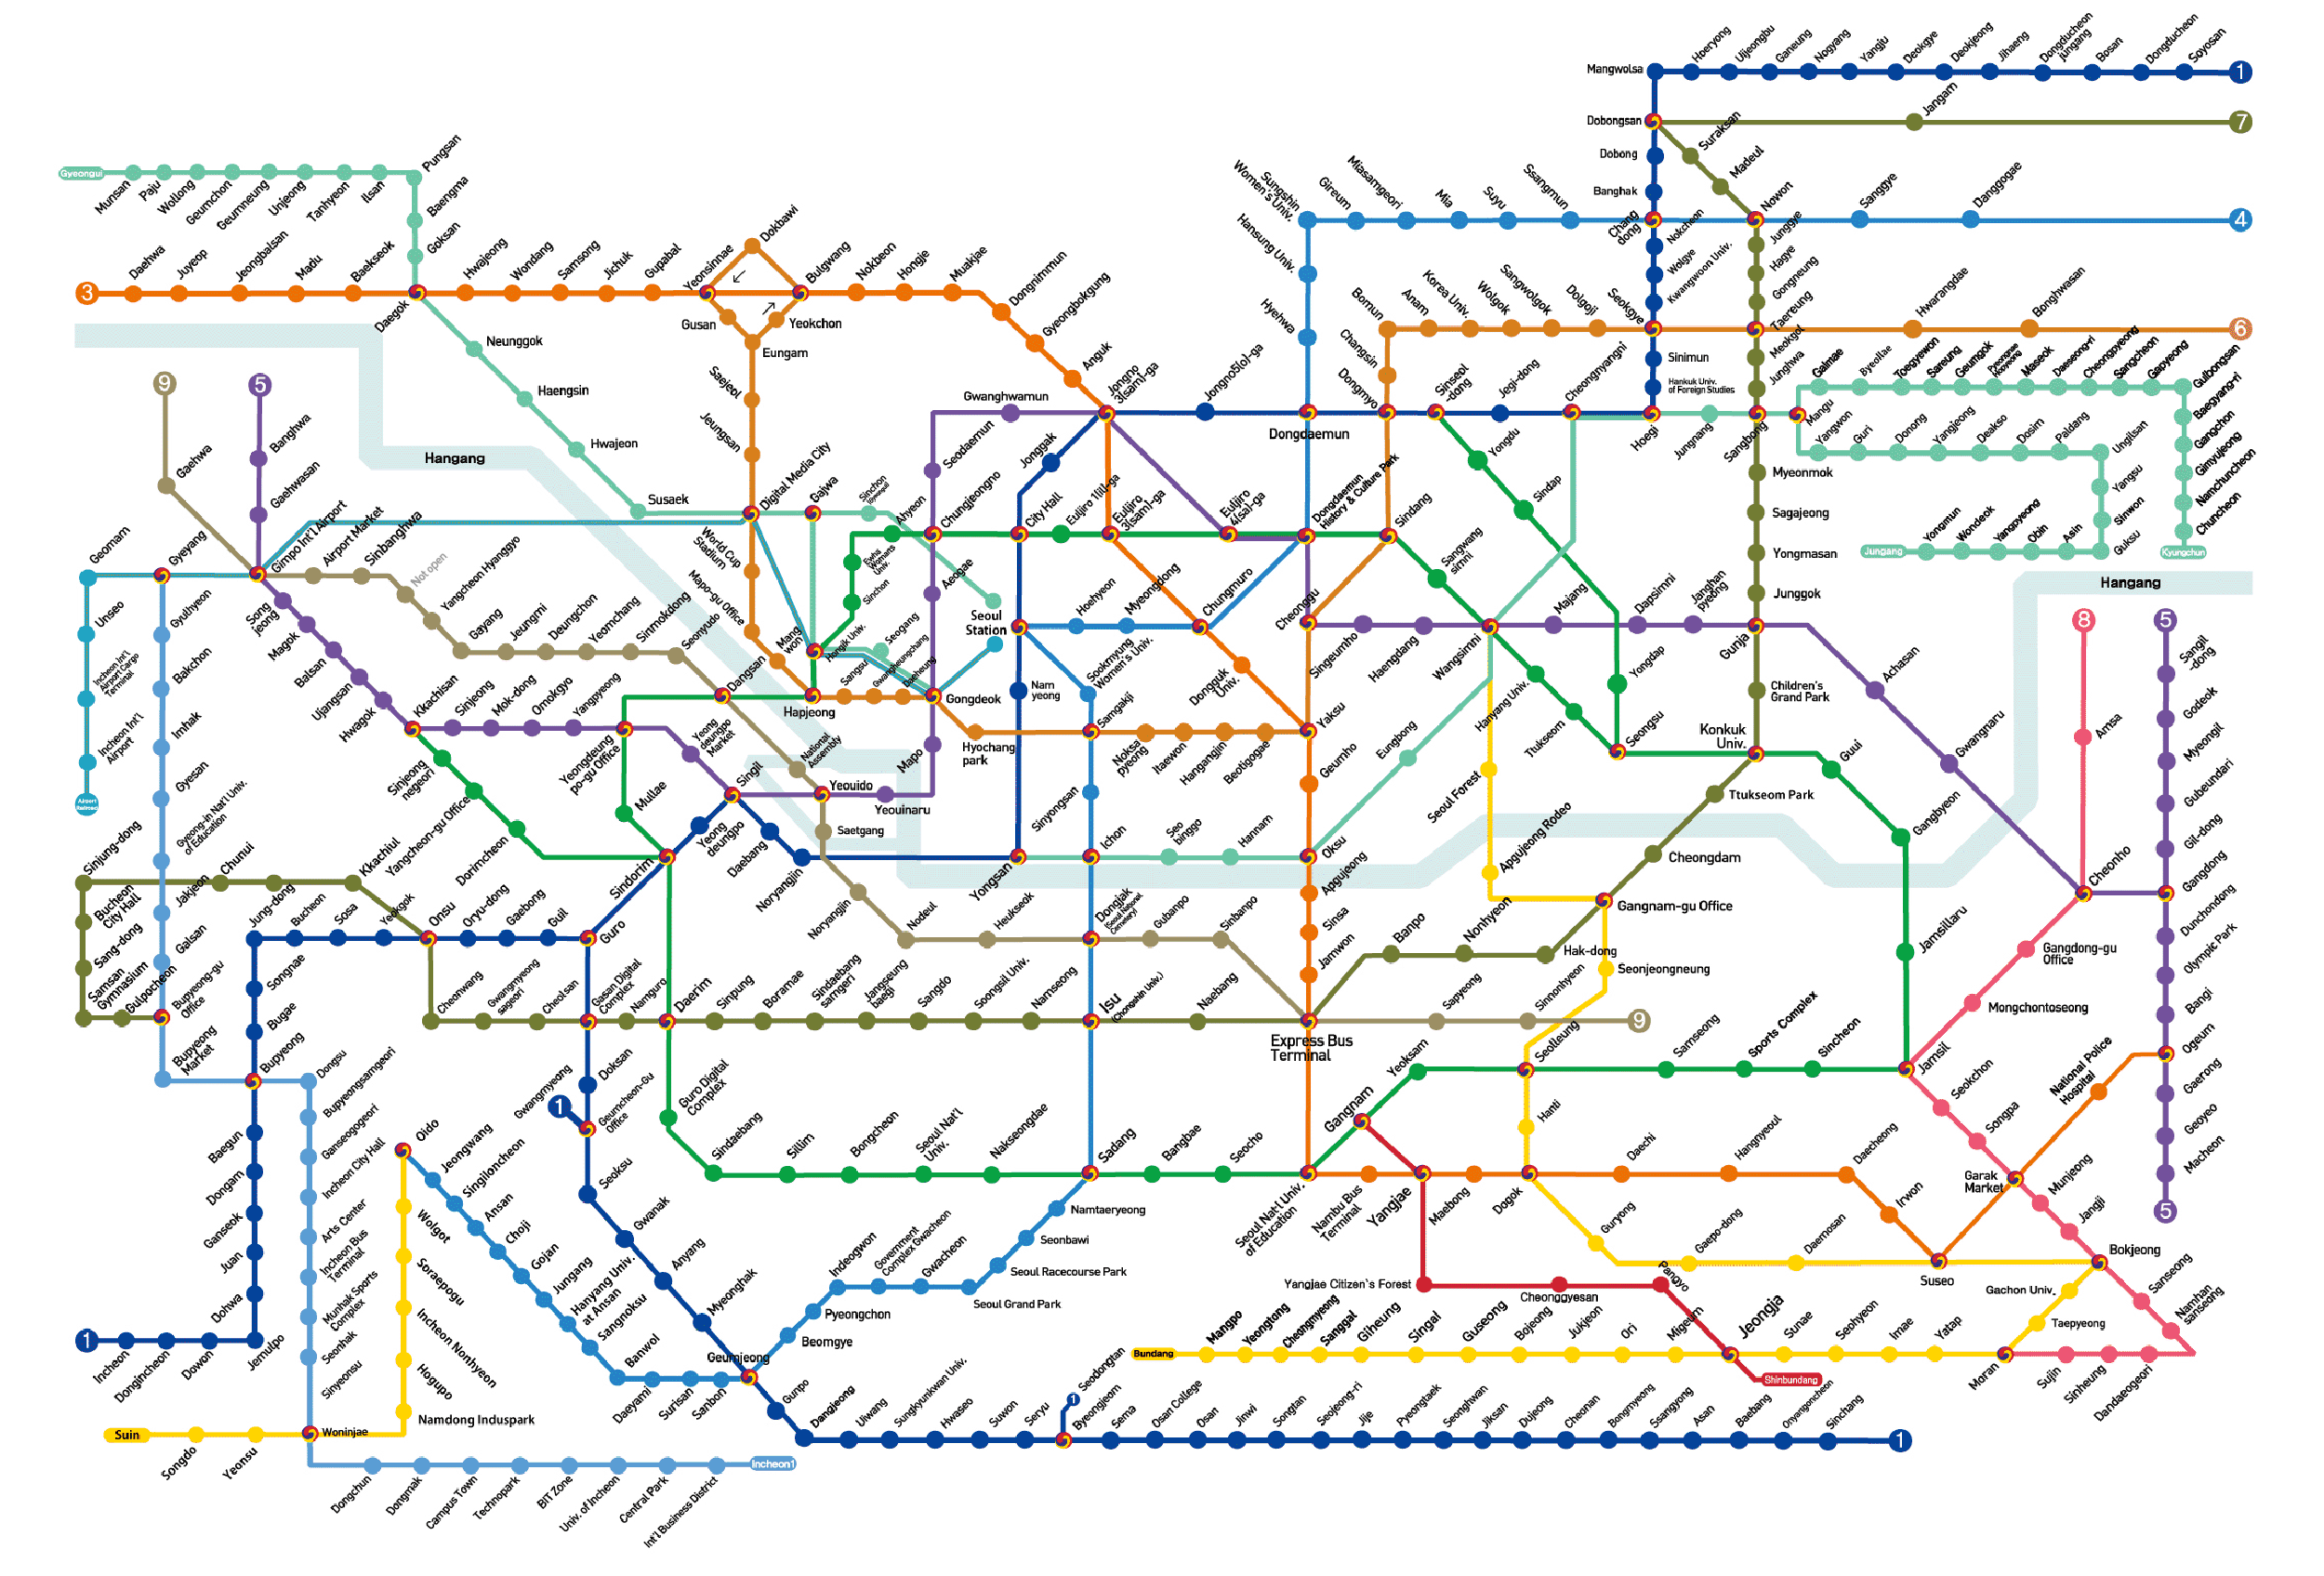 Seoul Subway Map 2015.Seoul Subway Map 2016 Time Zones Map